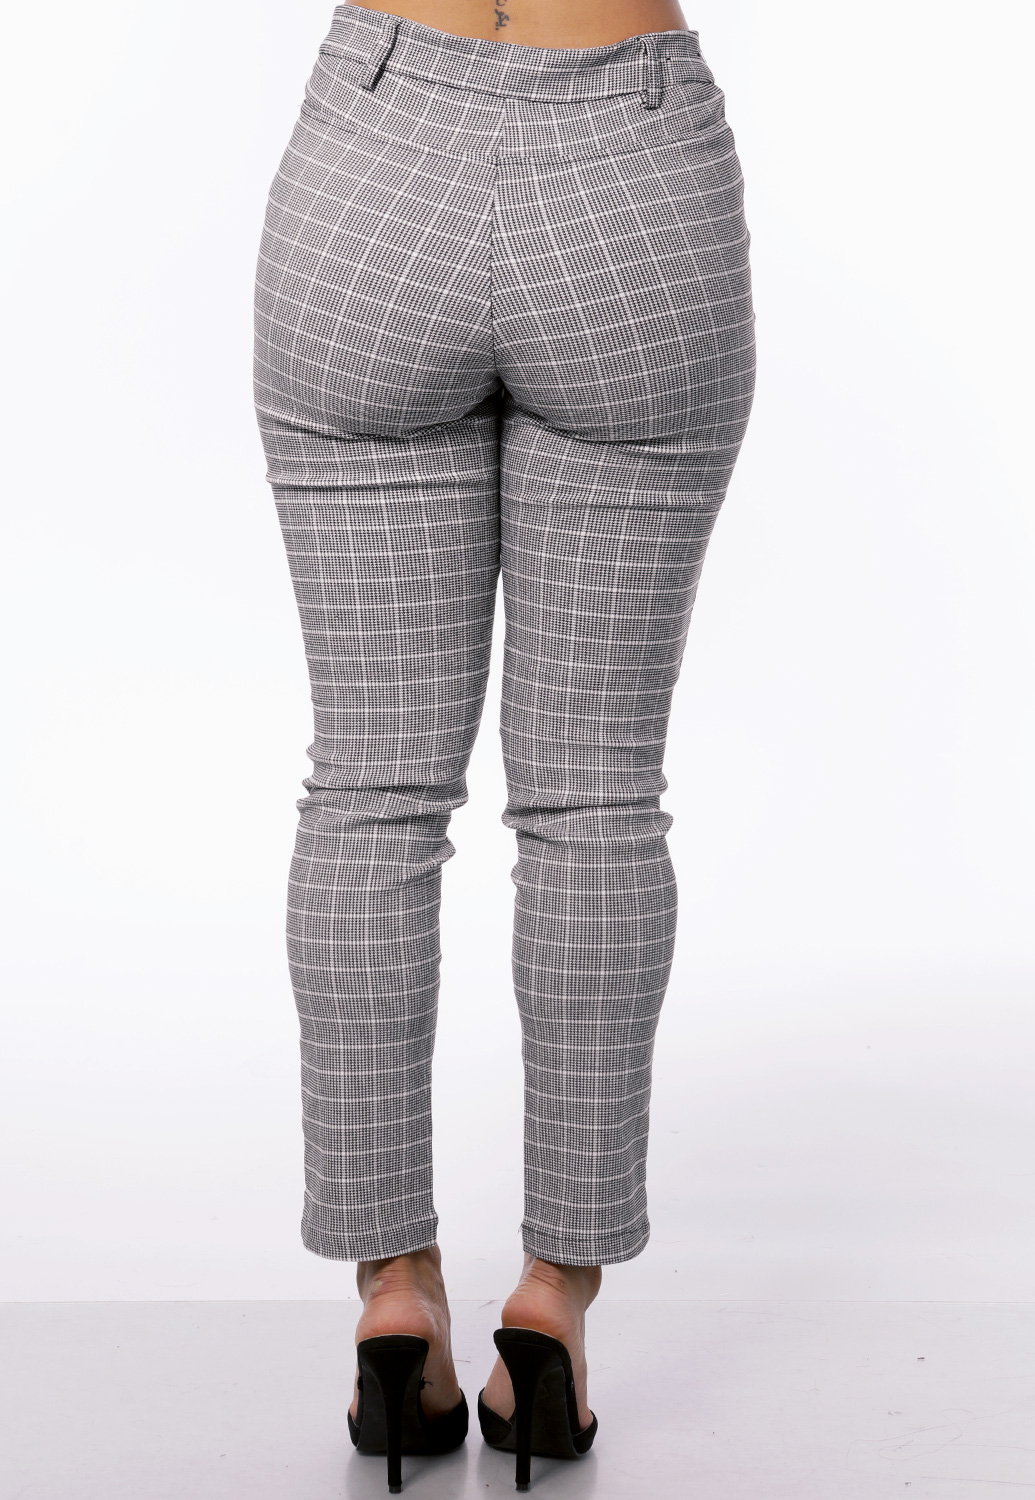 Glen Plaid Skinny Dressy Pants